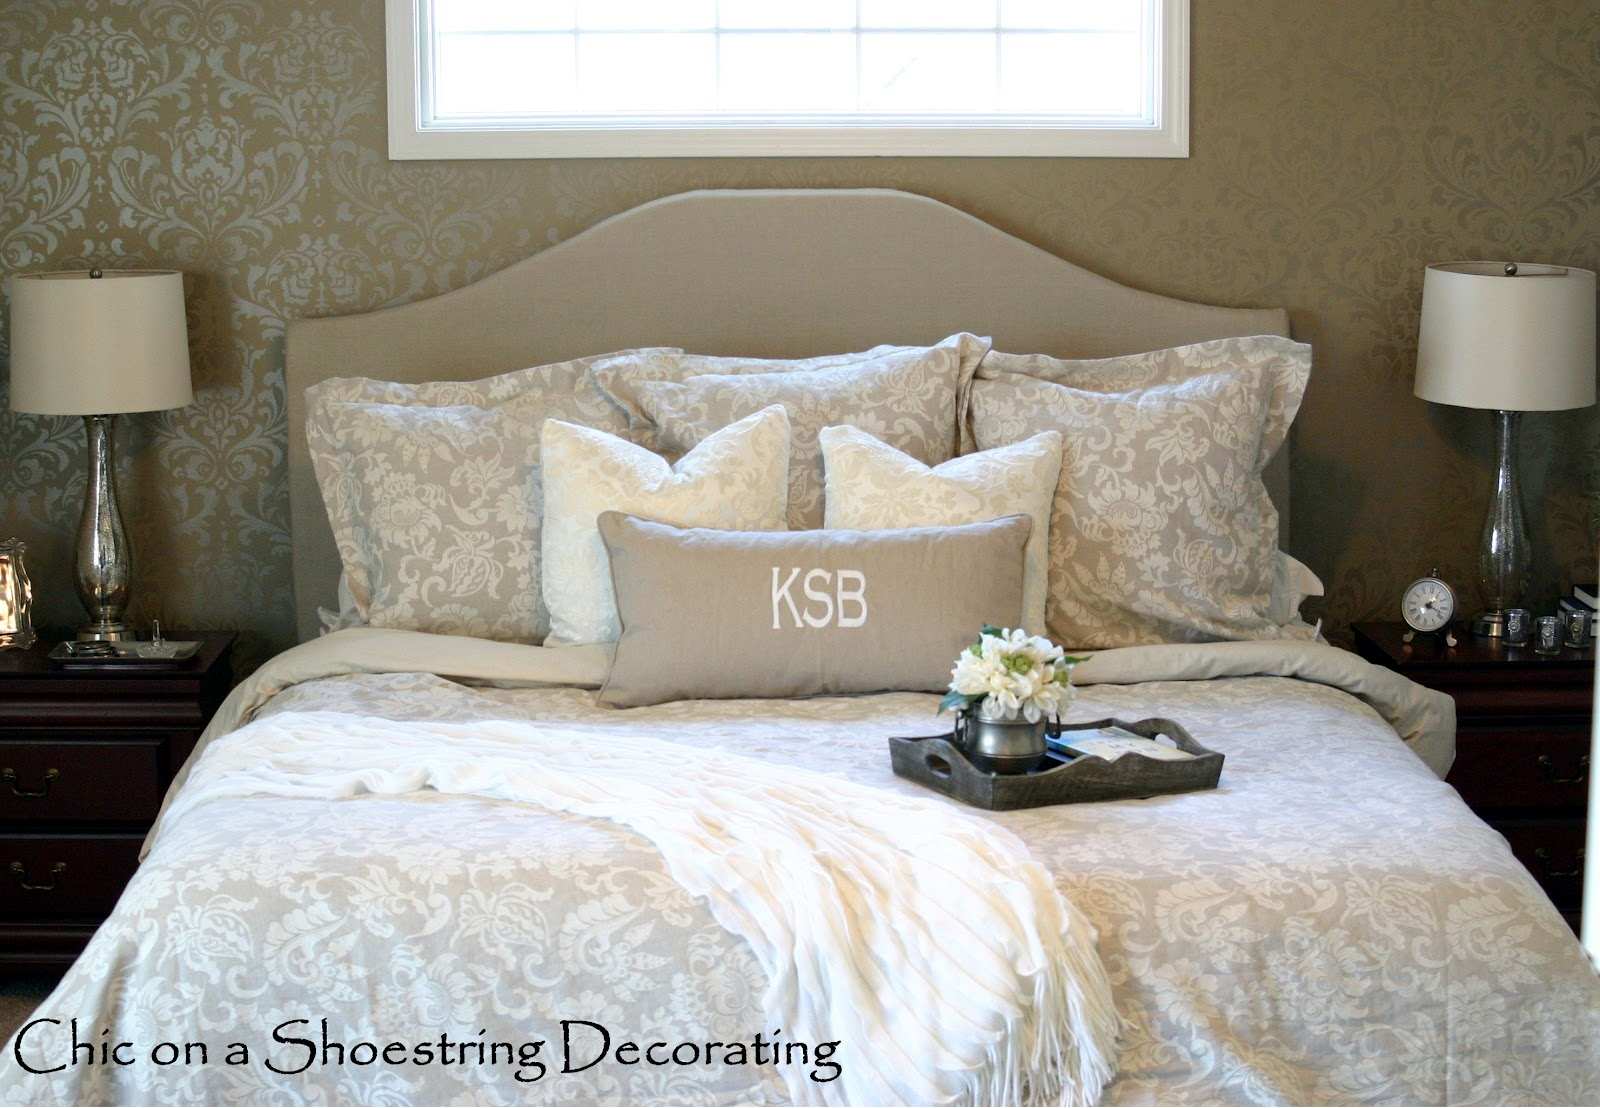 chic on a shoestring decorating neutral master bedroom reveal On master bedroom bedding ideas